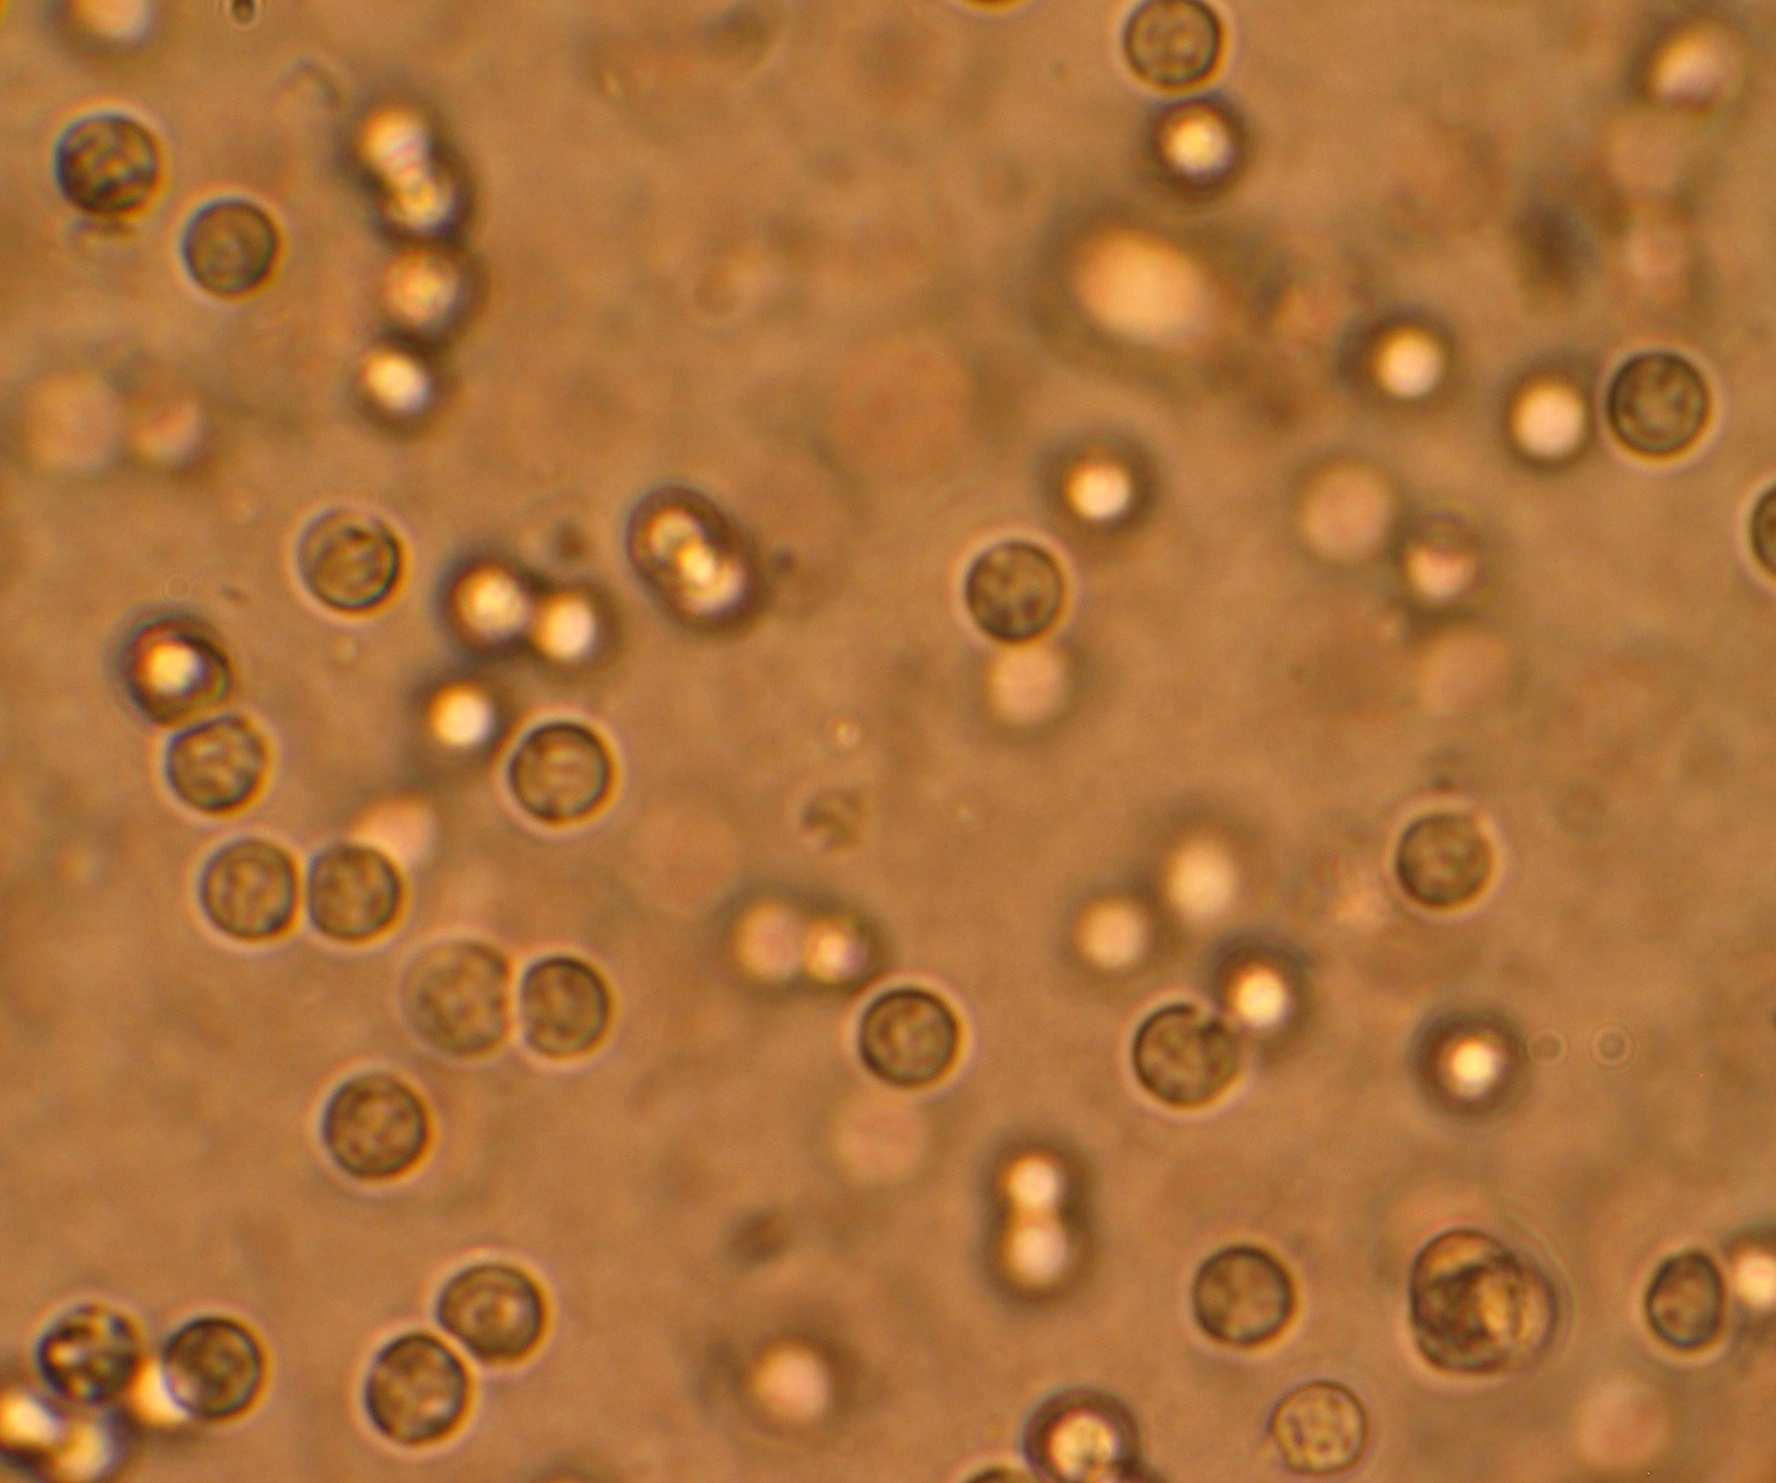 bacterii in urina la copii